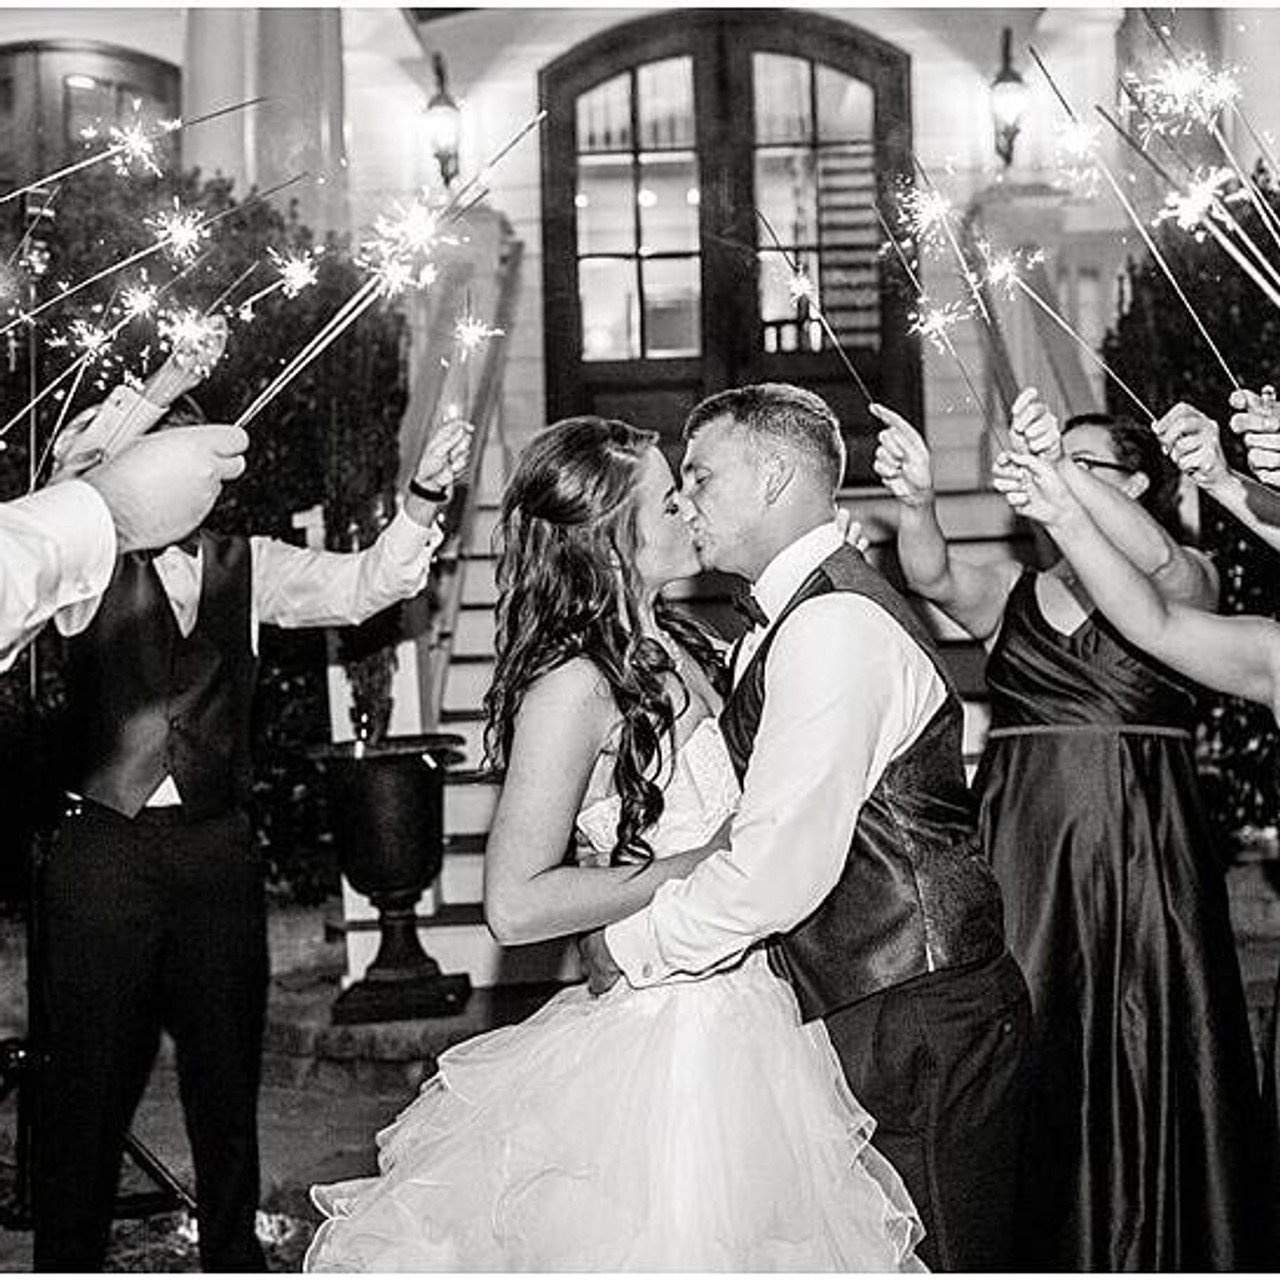 Wedding Supplies And Wedding Sparklers King Of Sparklers Com